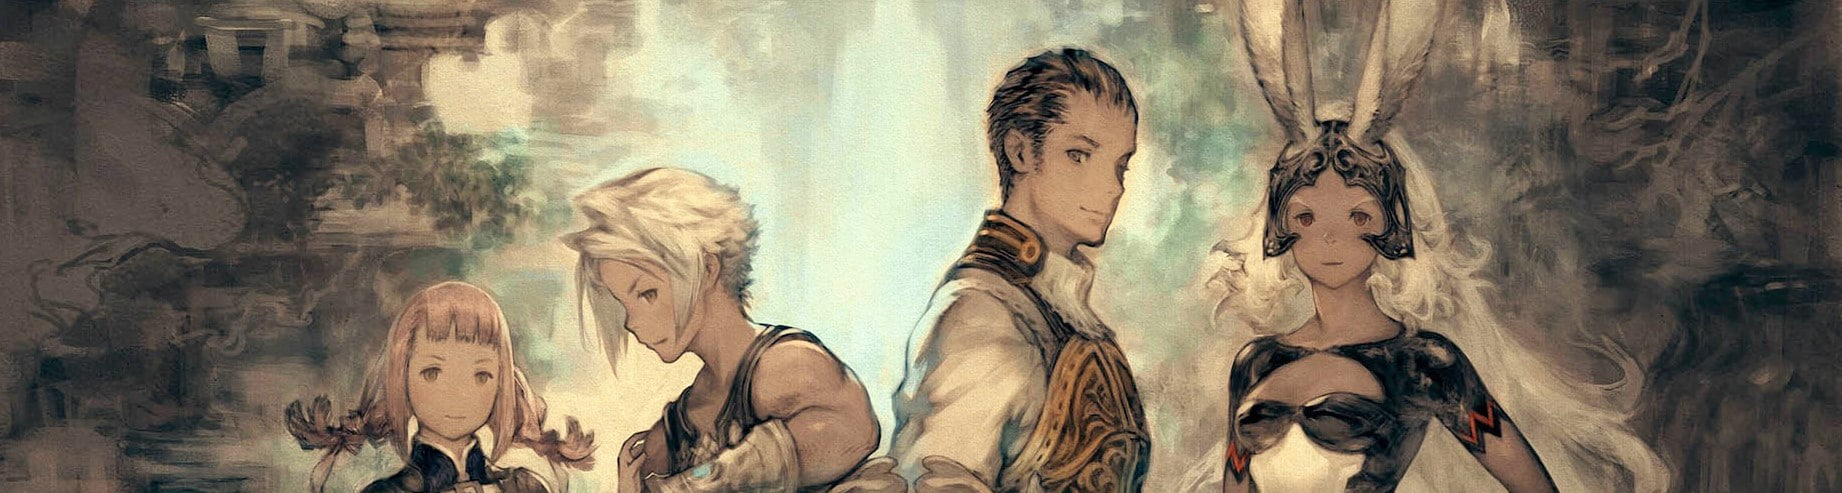 E3 2017: STRONGEST E3 TO DATE WITH A LINEUP OF 25 'VIRTUOS -GAMES' INCLUDING FINAL FANTASY XII FULLY REMASTERED BY VIRTUOS